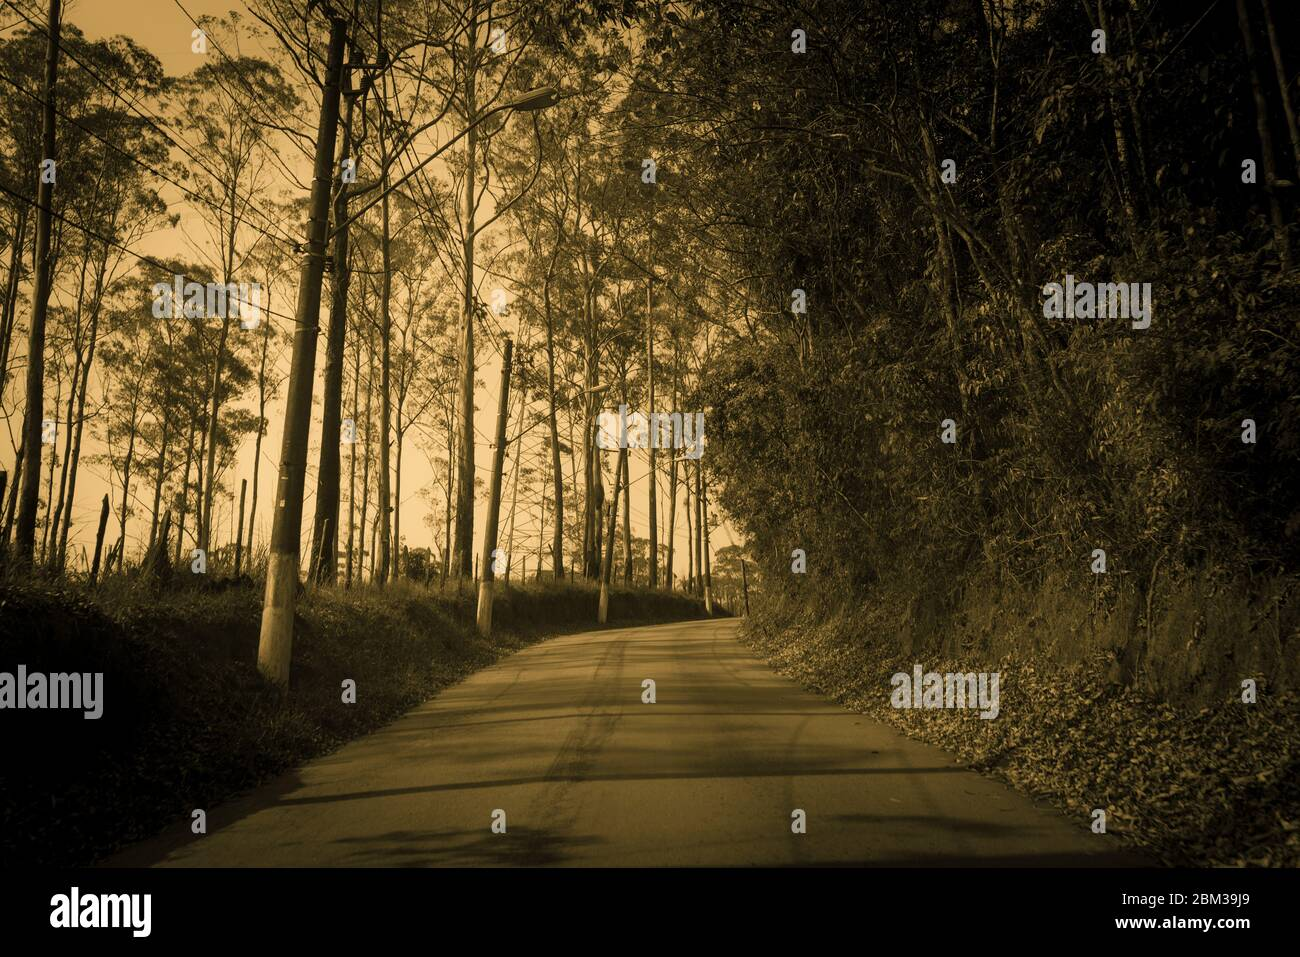 View Of Empty Road With Trees In Background High Resolution Stock Photography And Images Alamy